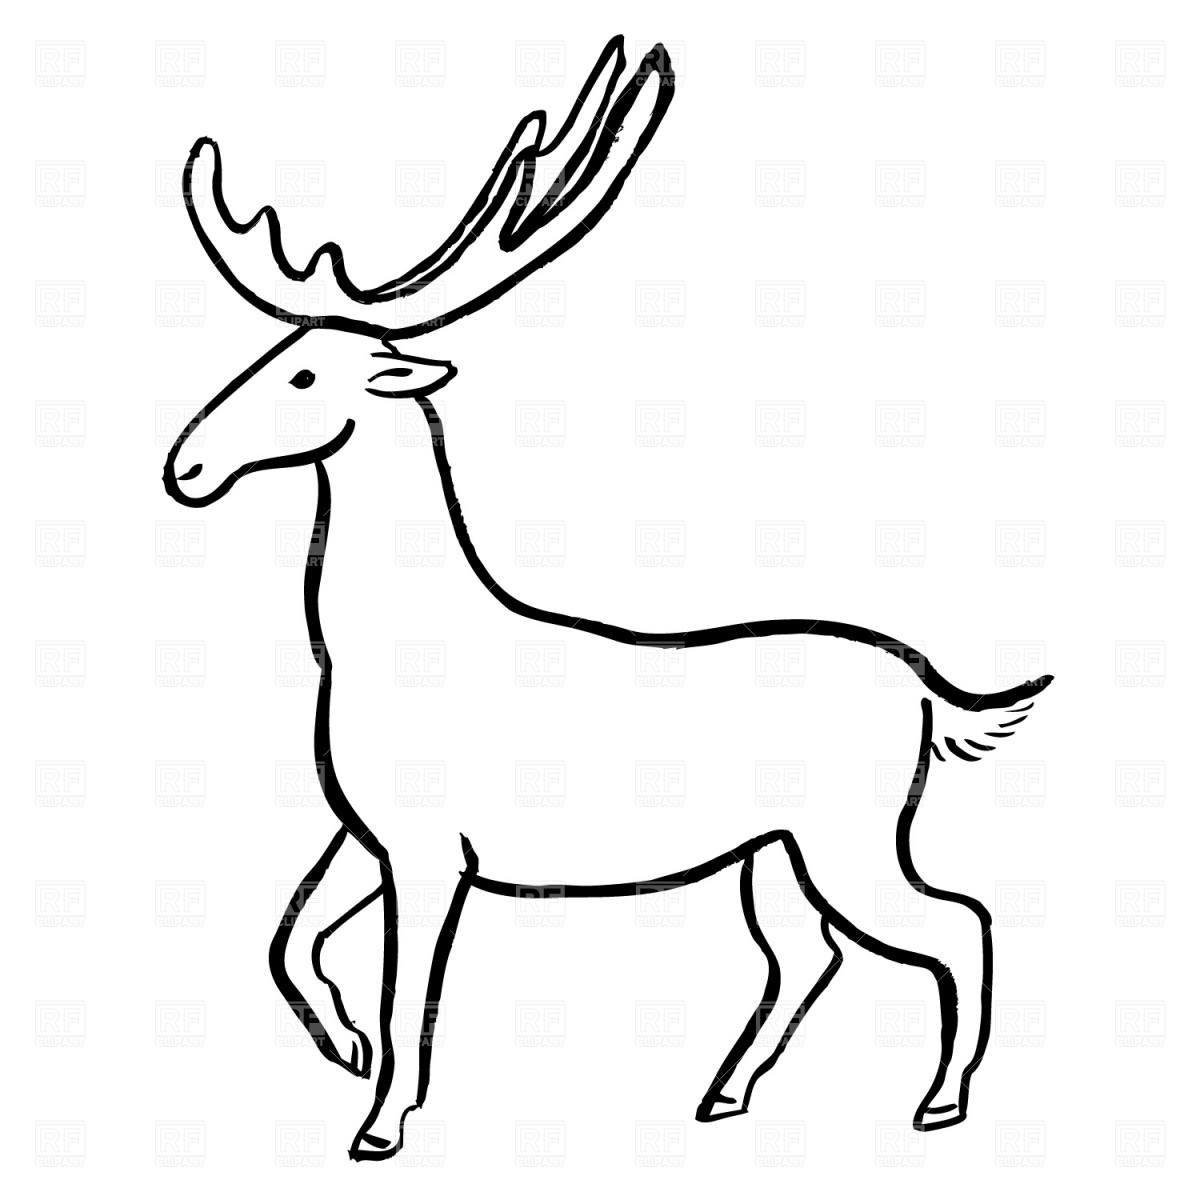 1200x1200 Image Of Moose Clipart 9 Moose Clip Art Images Free